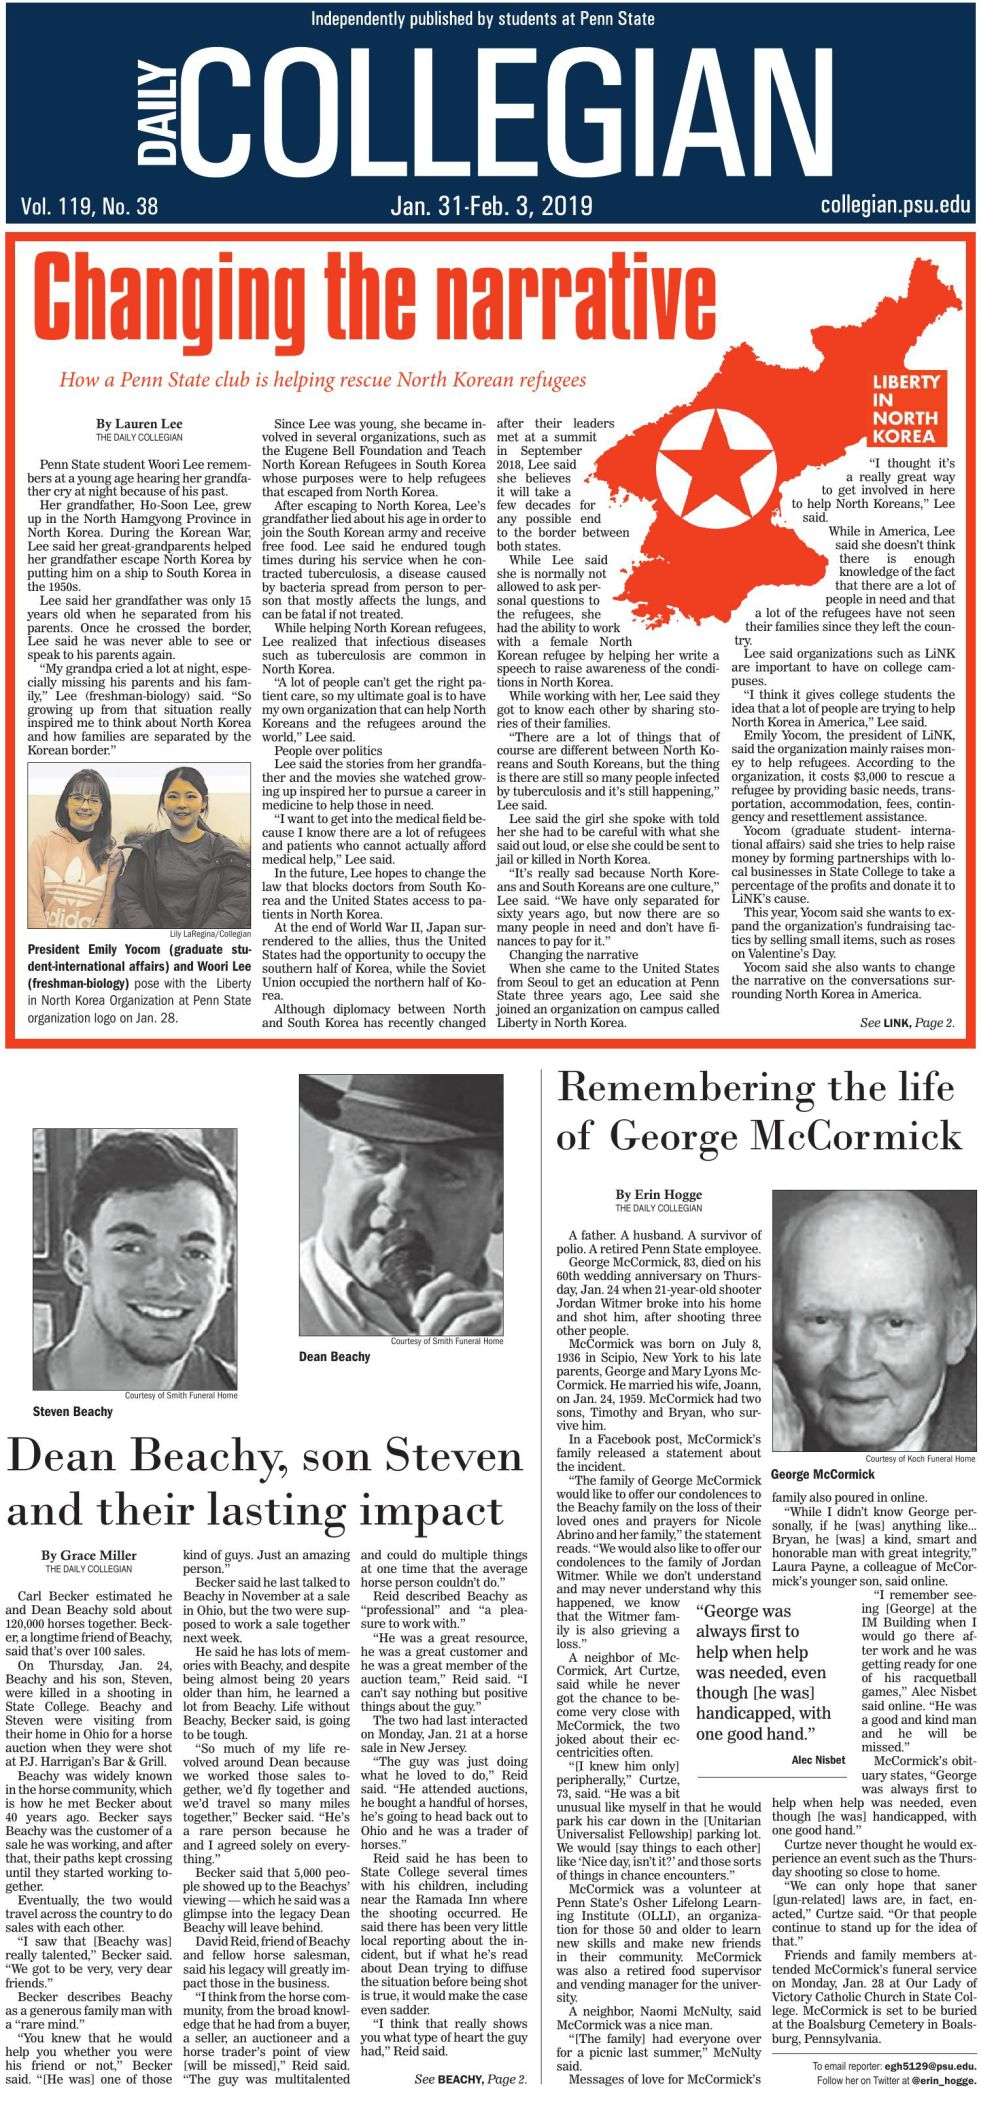 The Daily Collegian for Jan. 31, 2019